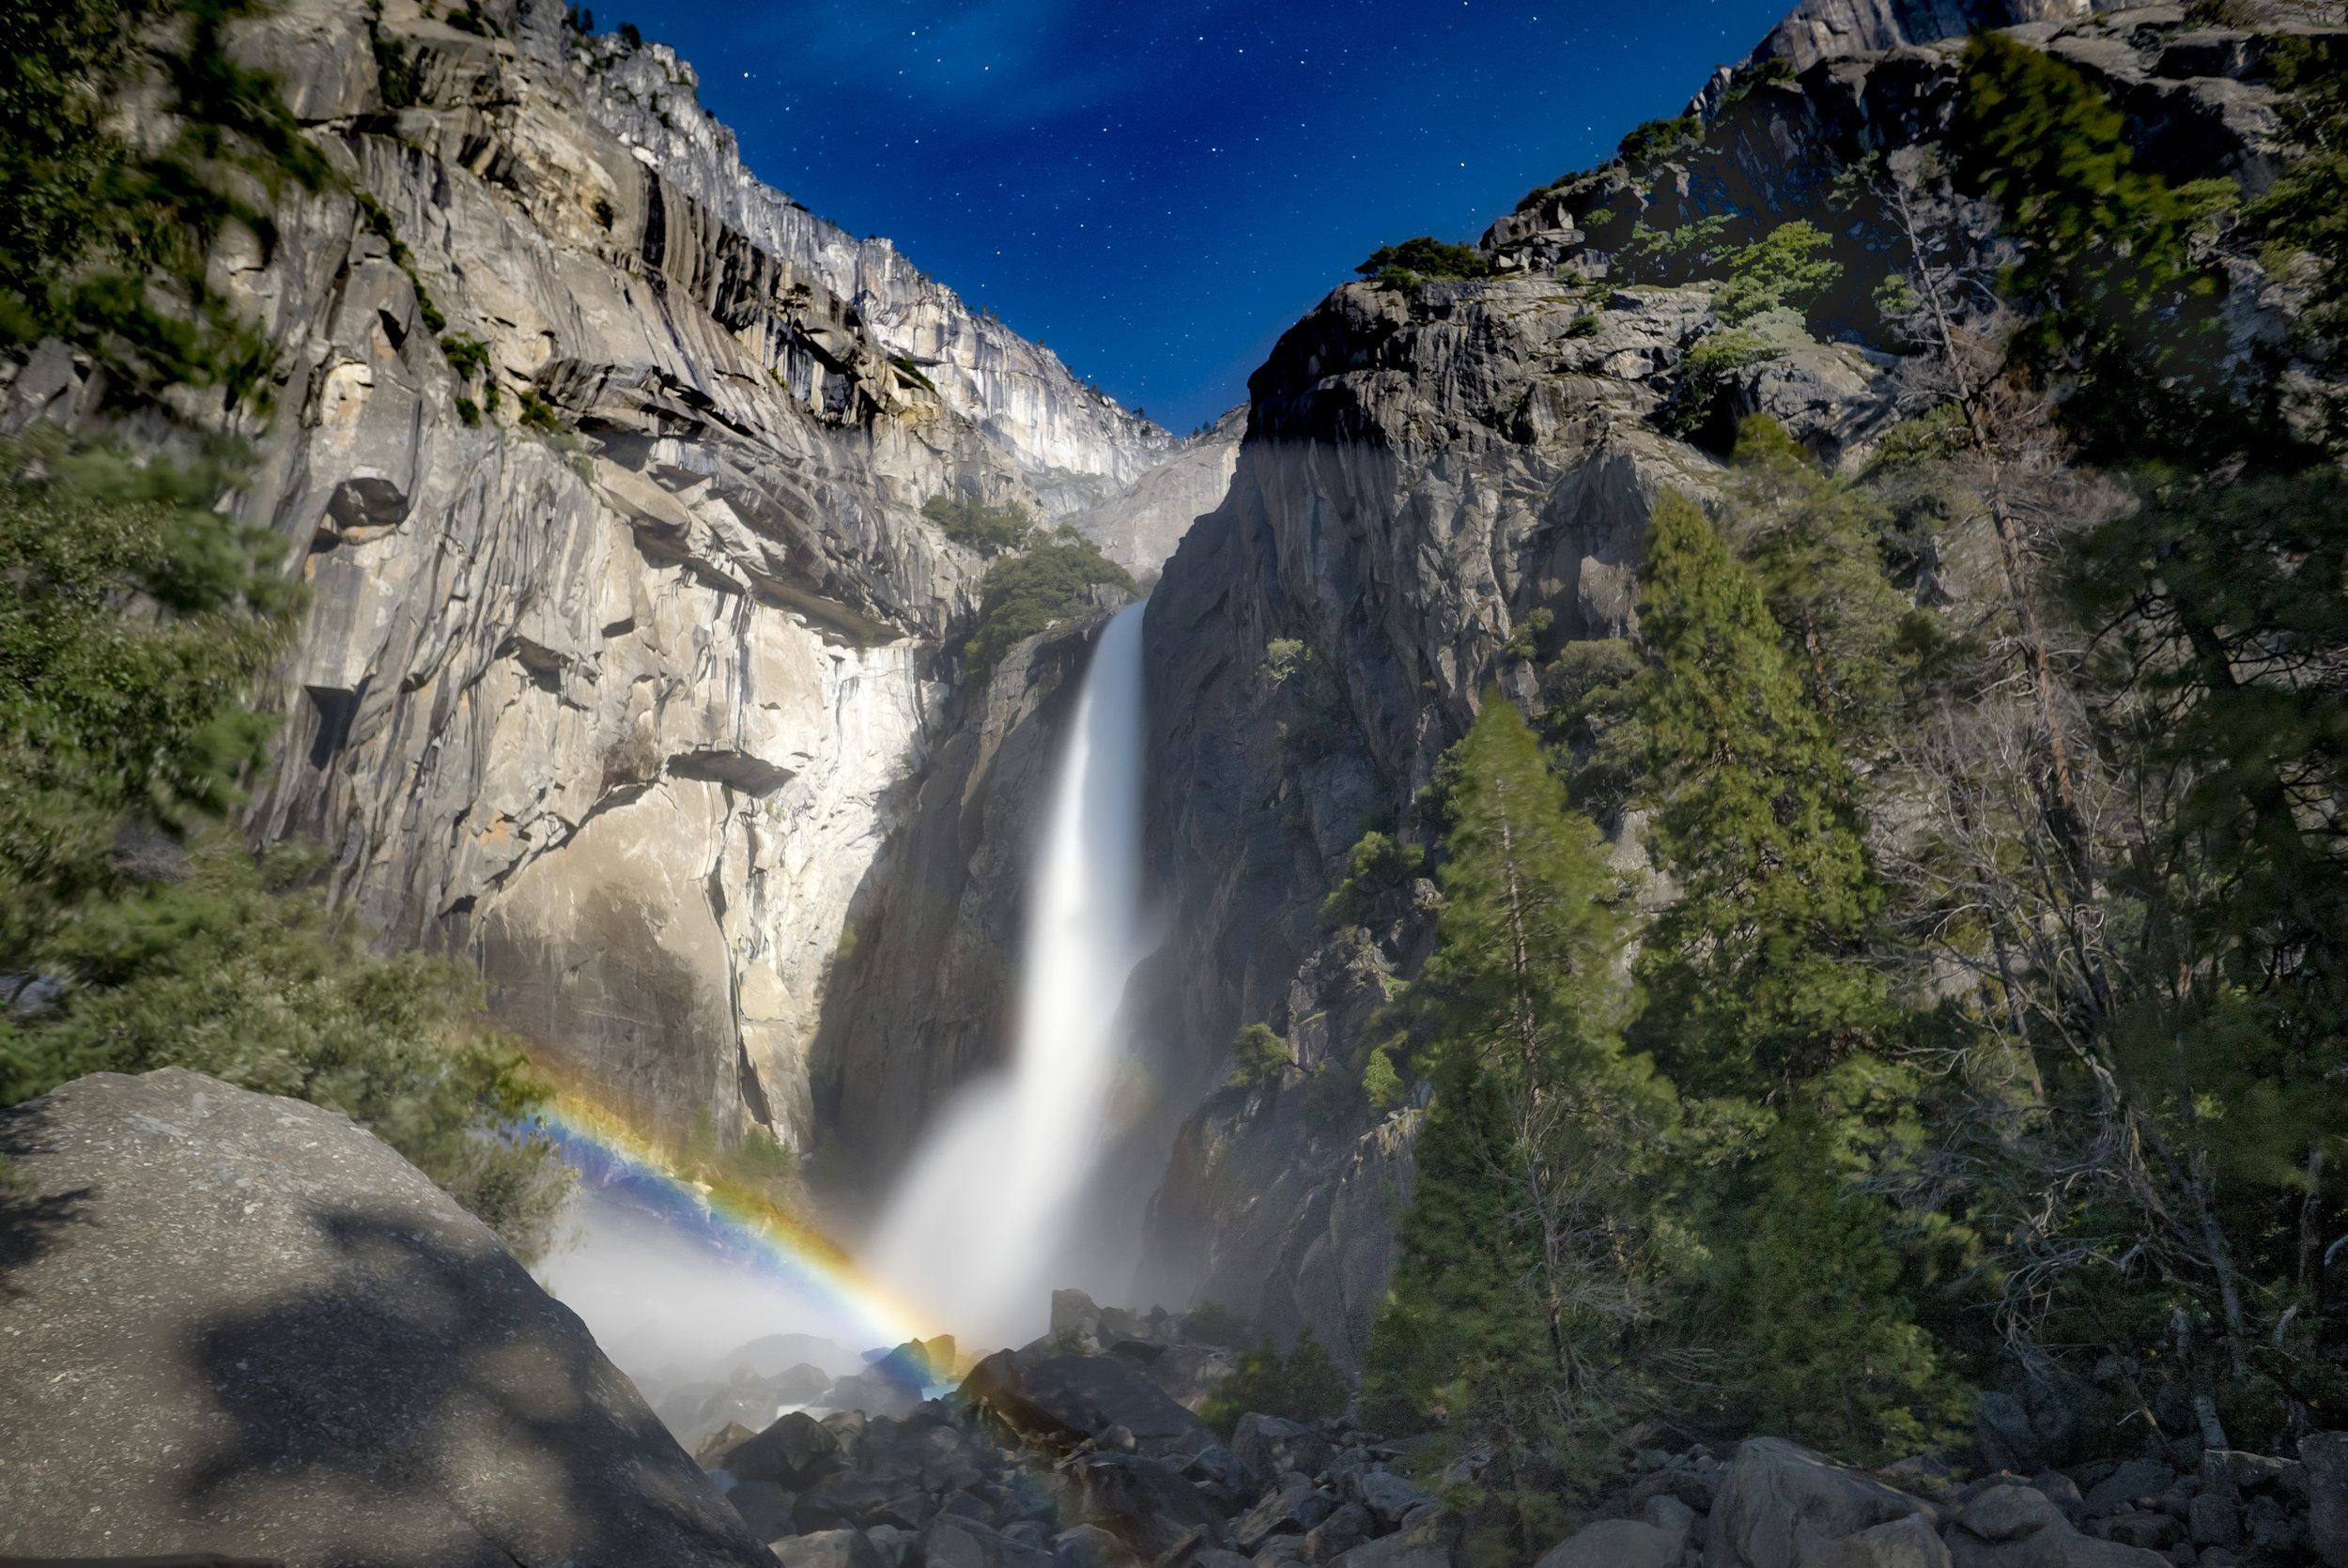 Moonbow over Lower Yosemite Falls, Full Moon 4/2017